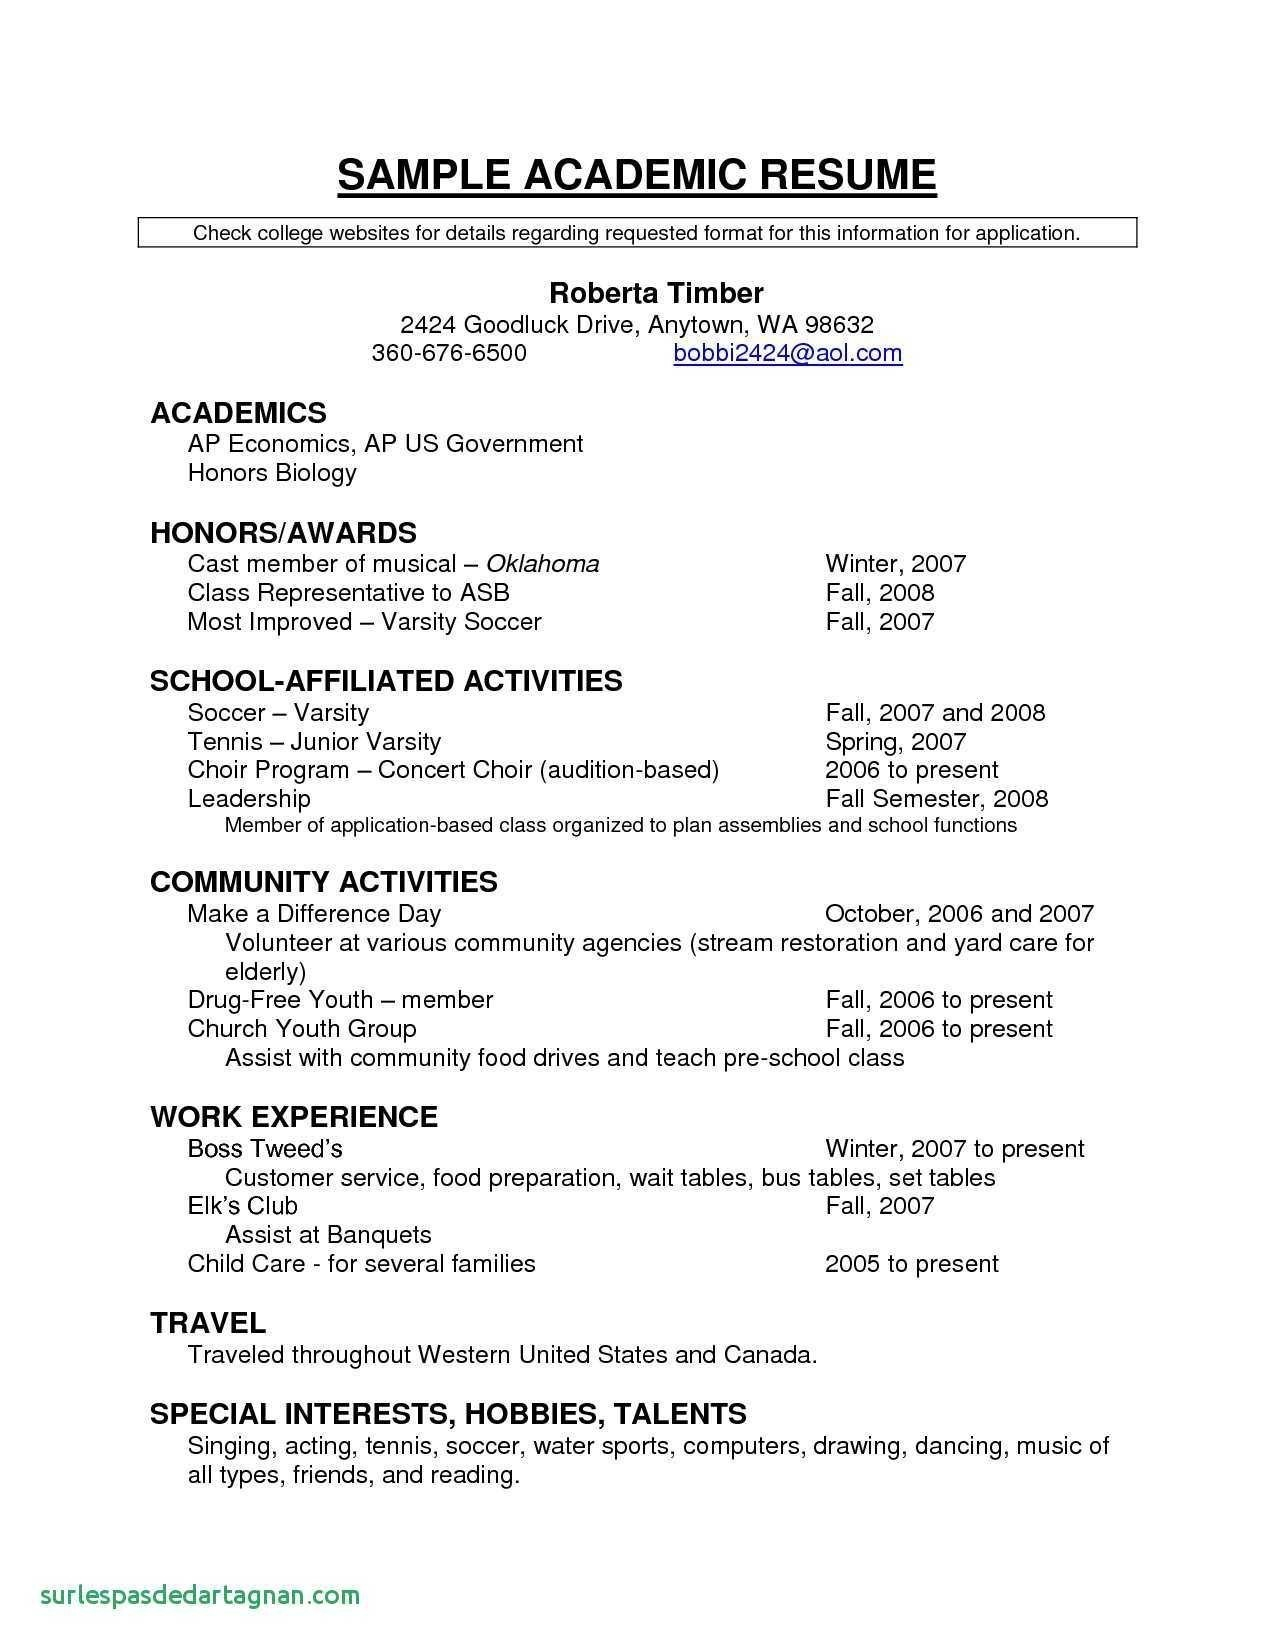 Lawn Service Resume - 30 Awesome Lawn Care Resume